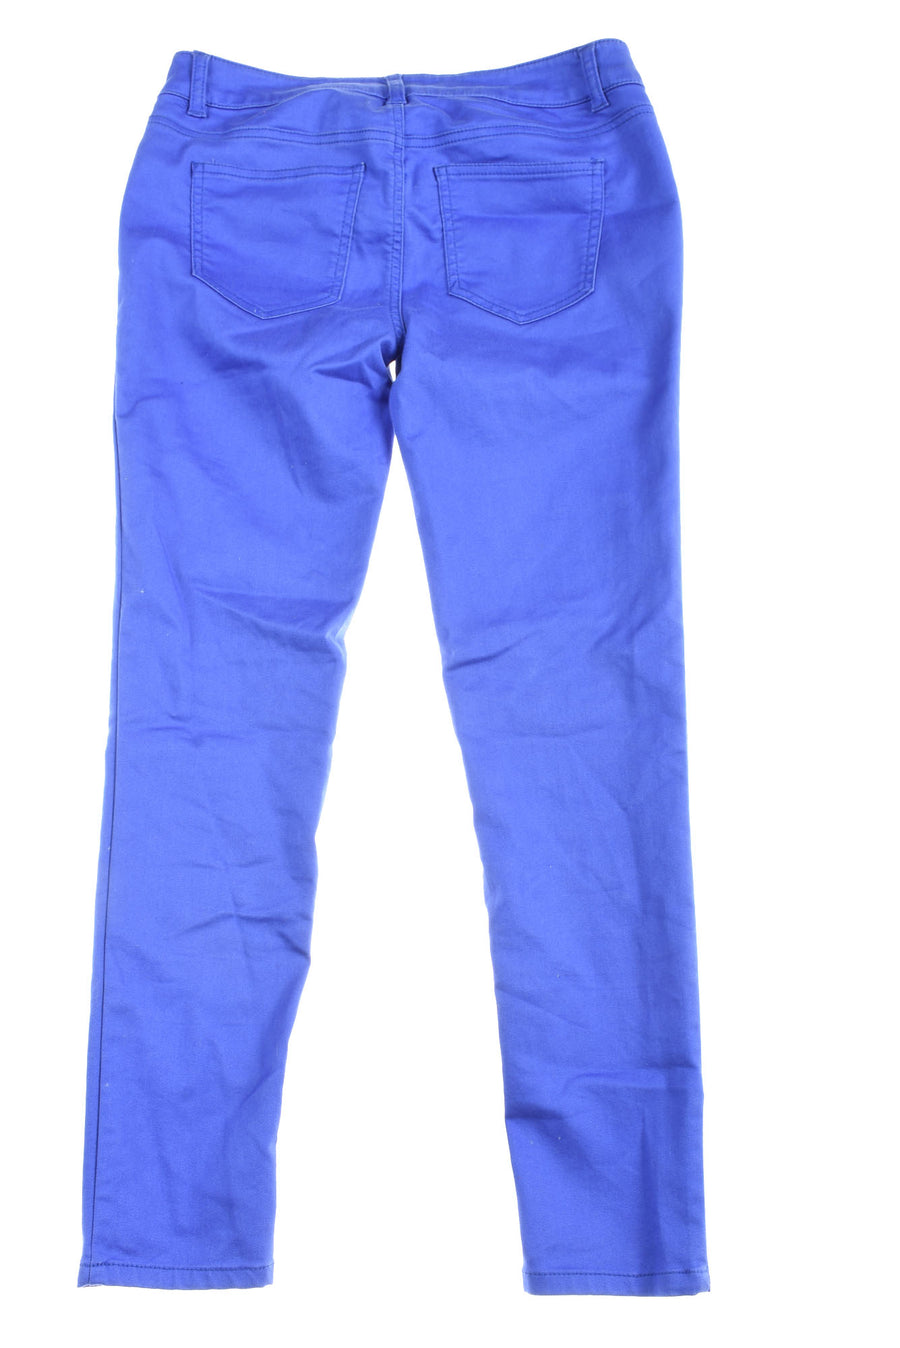 USED Tinseltown Women's Pants 9 Blue